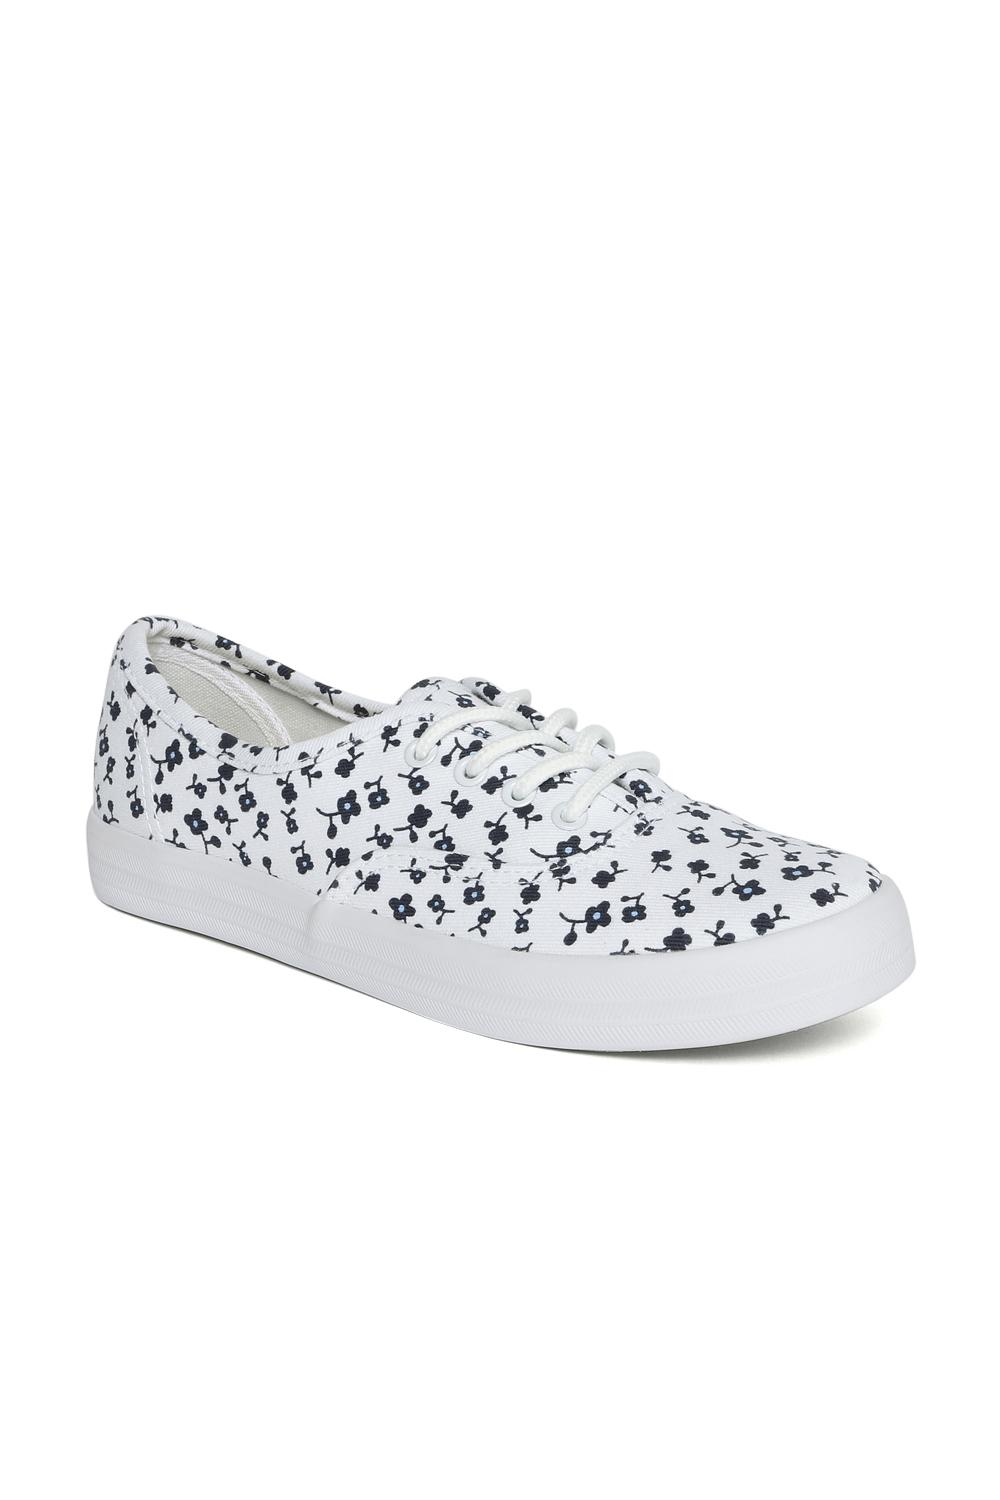 Coloured Printed Lace Up Canvas Shoes